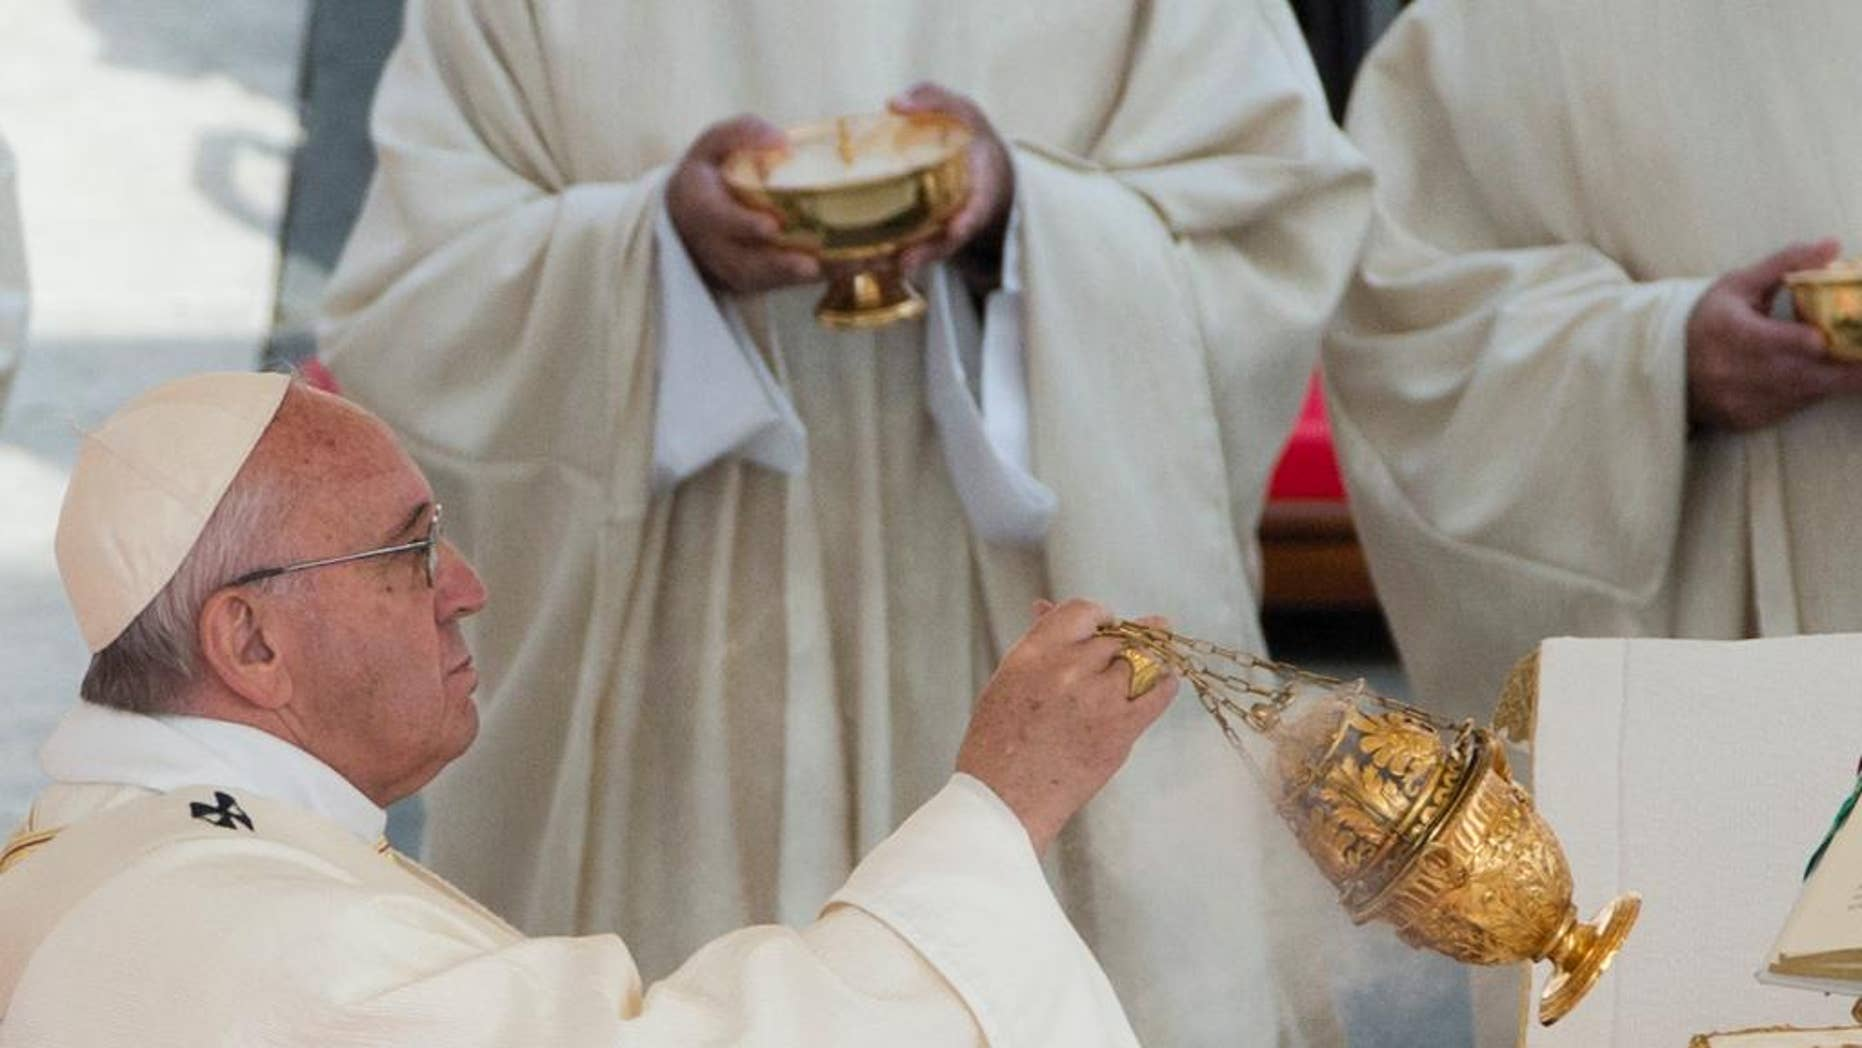 Pope Francis spreads incense during a canonization ceremony in St. Peter's Square at the Vatican Sunday, Oct. 18, 2015. Pope Francis canonized the Catholic Church's first married couple in modern times on Sunday, declaring the parents of the beloved St. Therese of Lisieux saints in their own right. (AP Photo/Alessandra Tarantino)